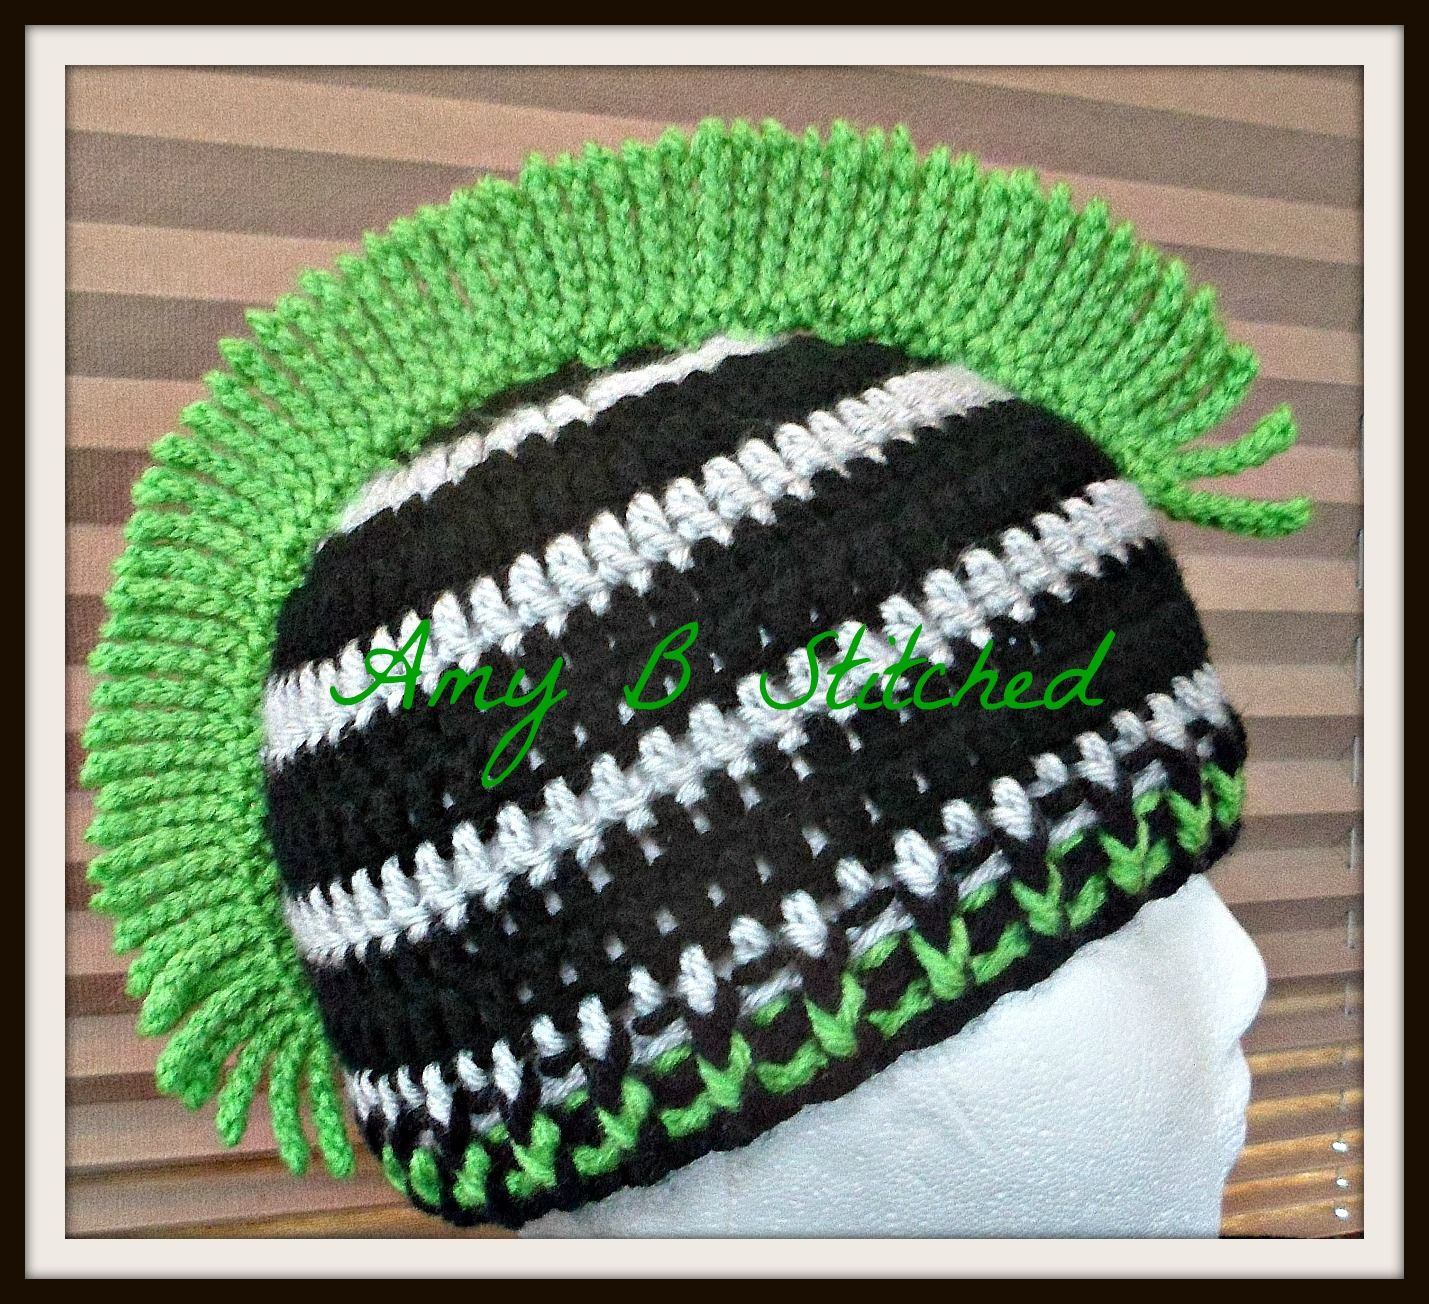 A Stitch At A Time for Amy B Stitched: Mohawk Beanie FREE Crochet ...